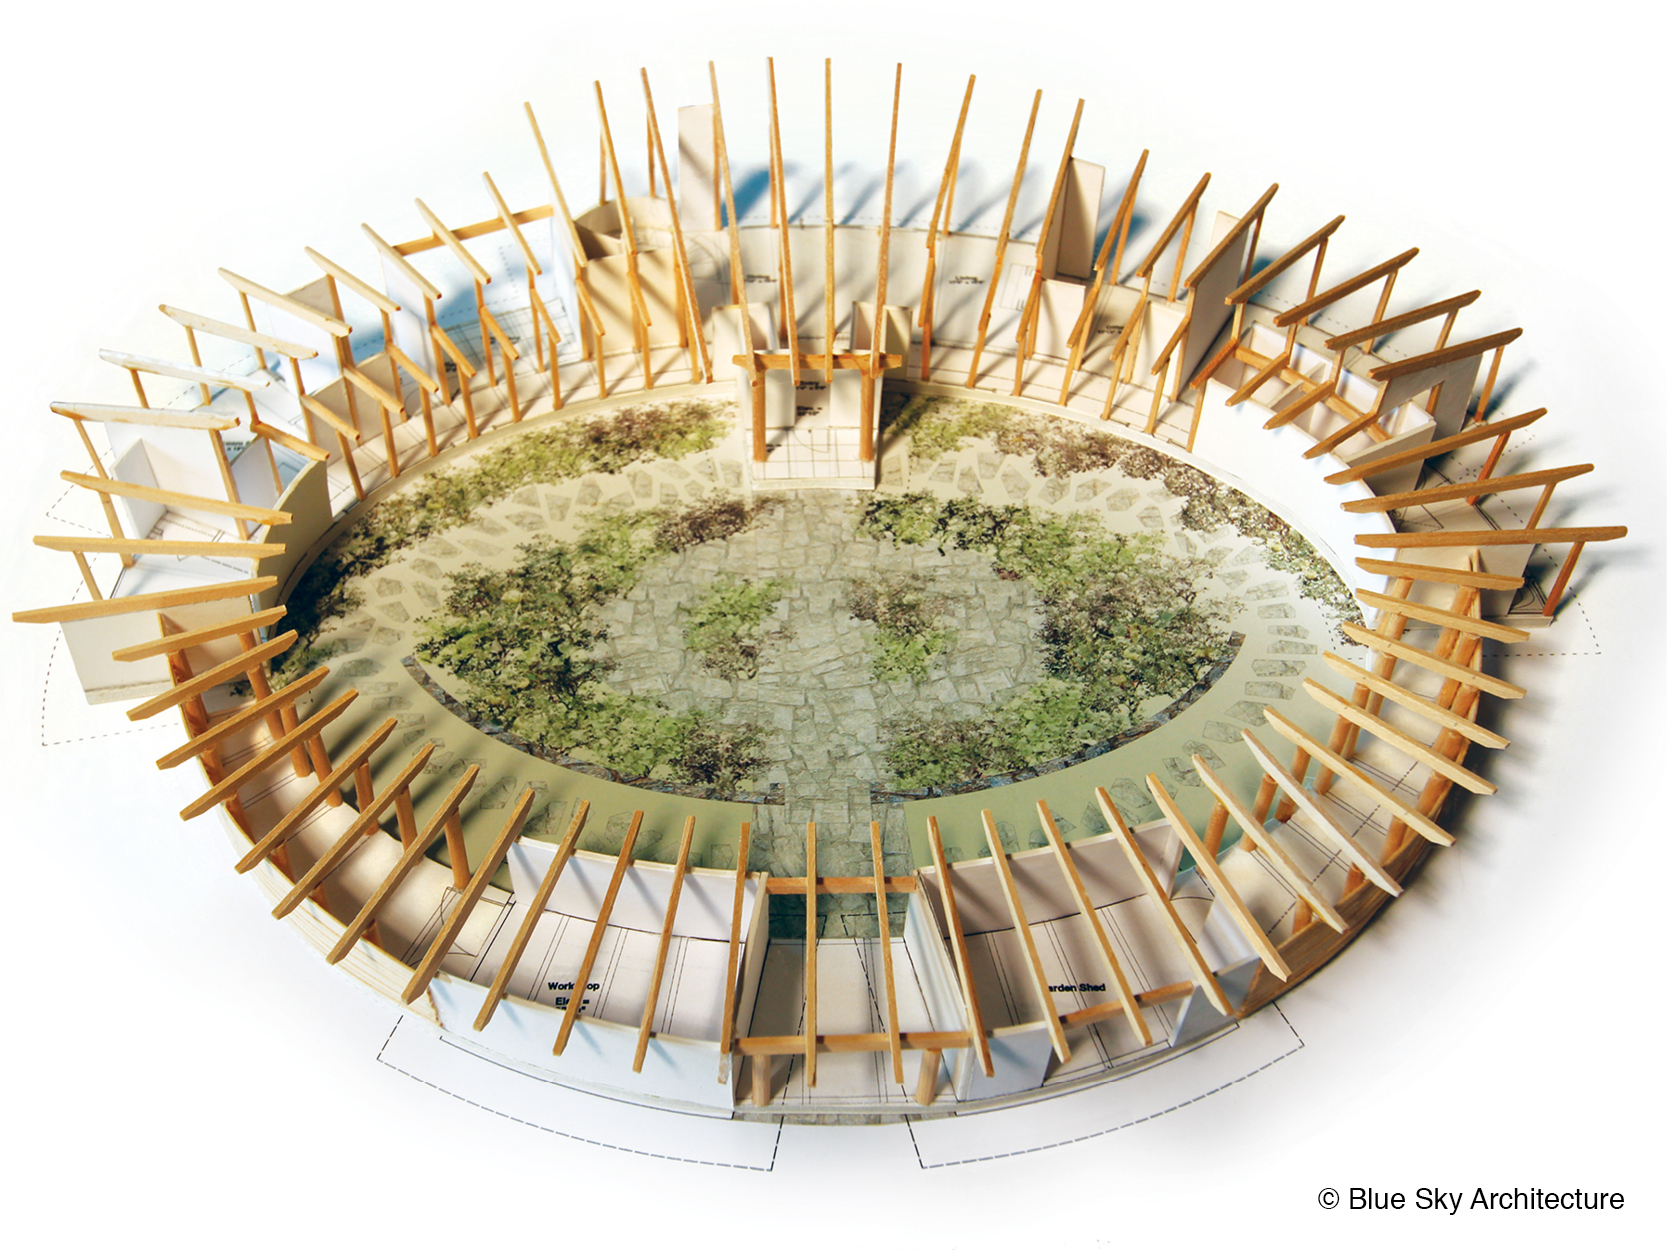 Architectural model view of the circular Booklovers House